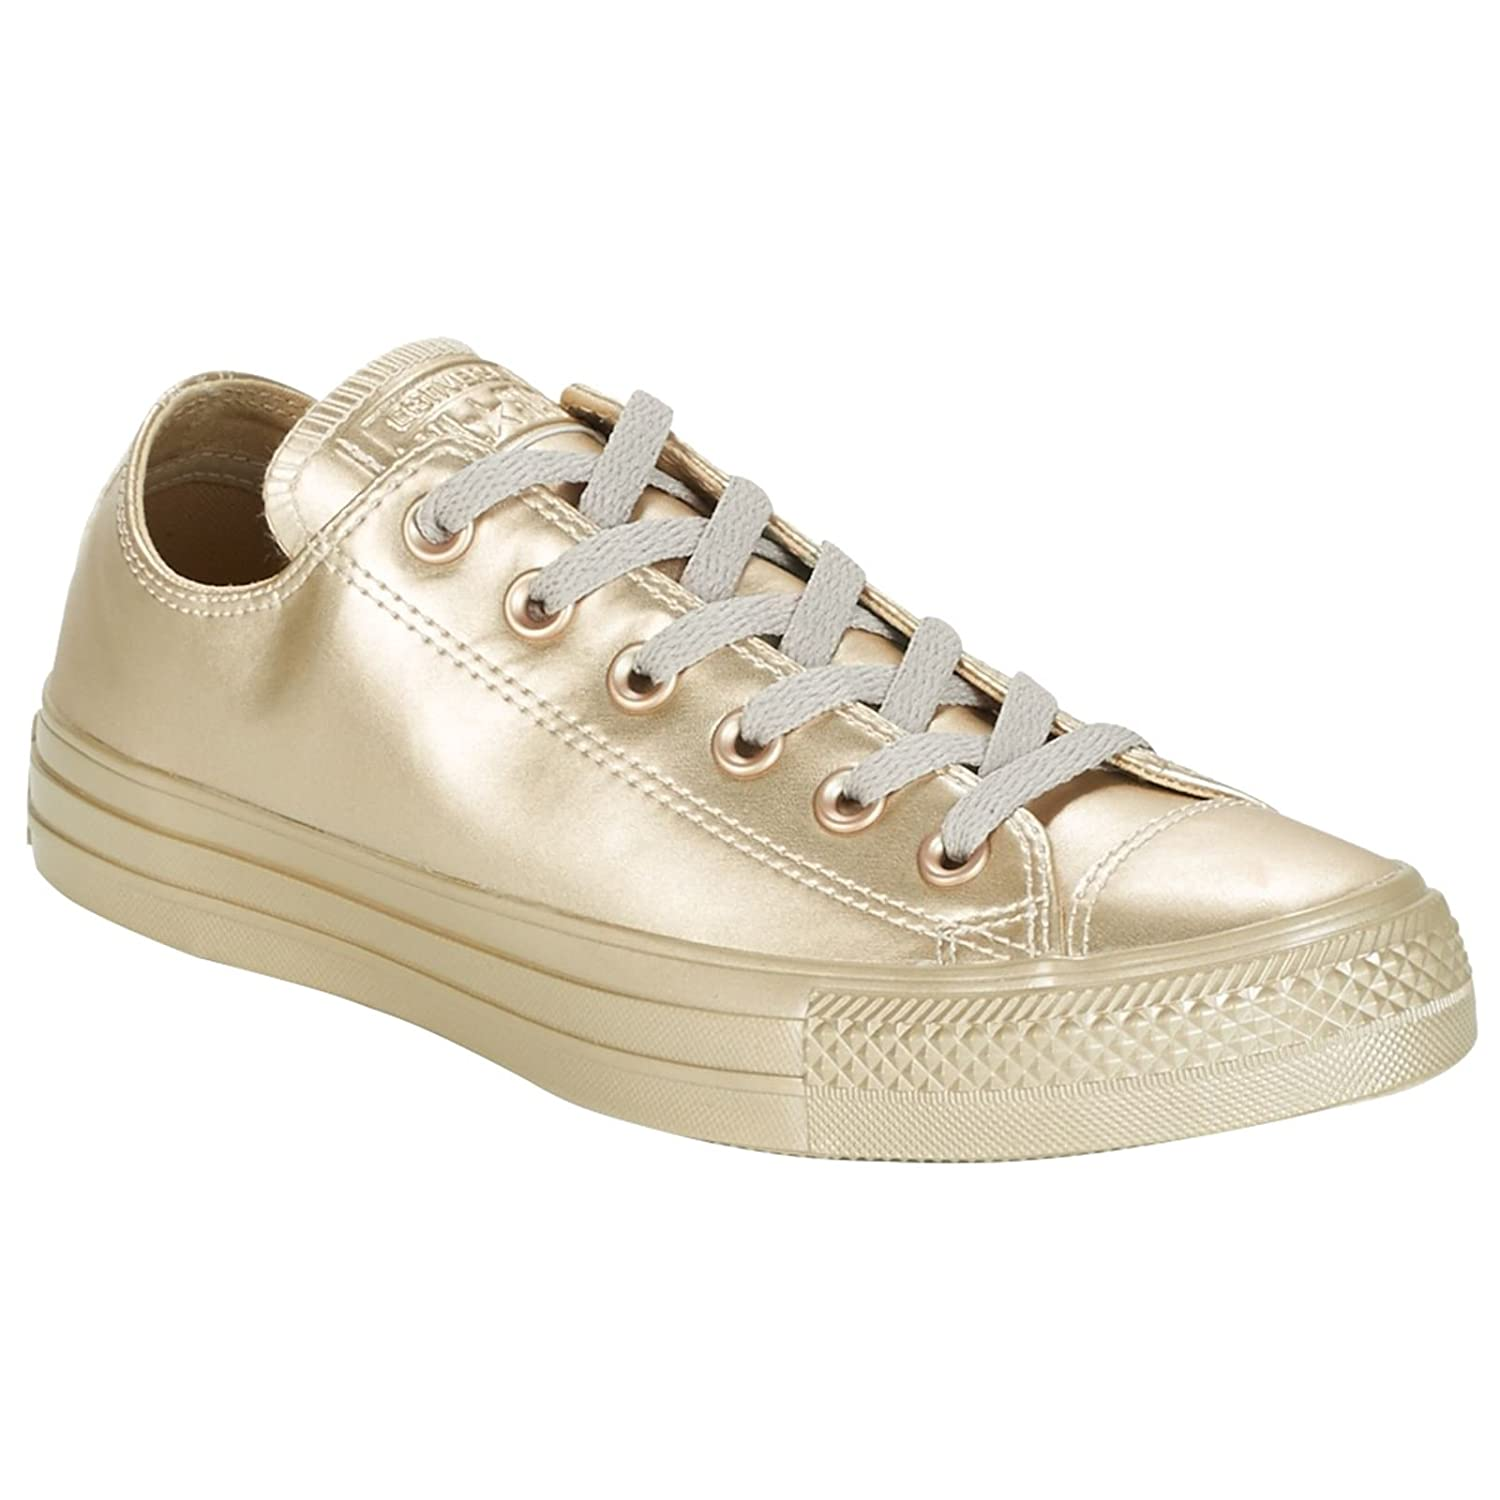 TALLA 43 EU. Converse Chuck Taylor All Star, Zapatillas Unisex Adulto